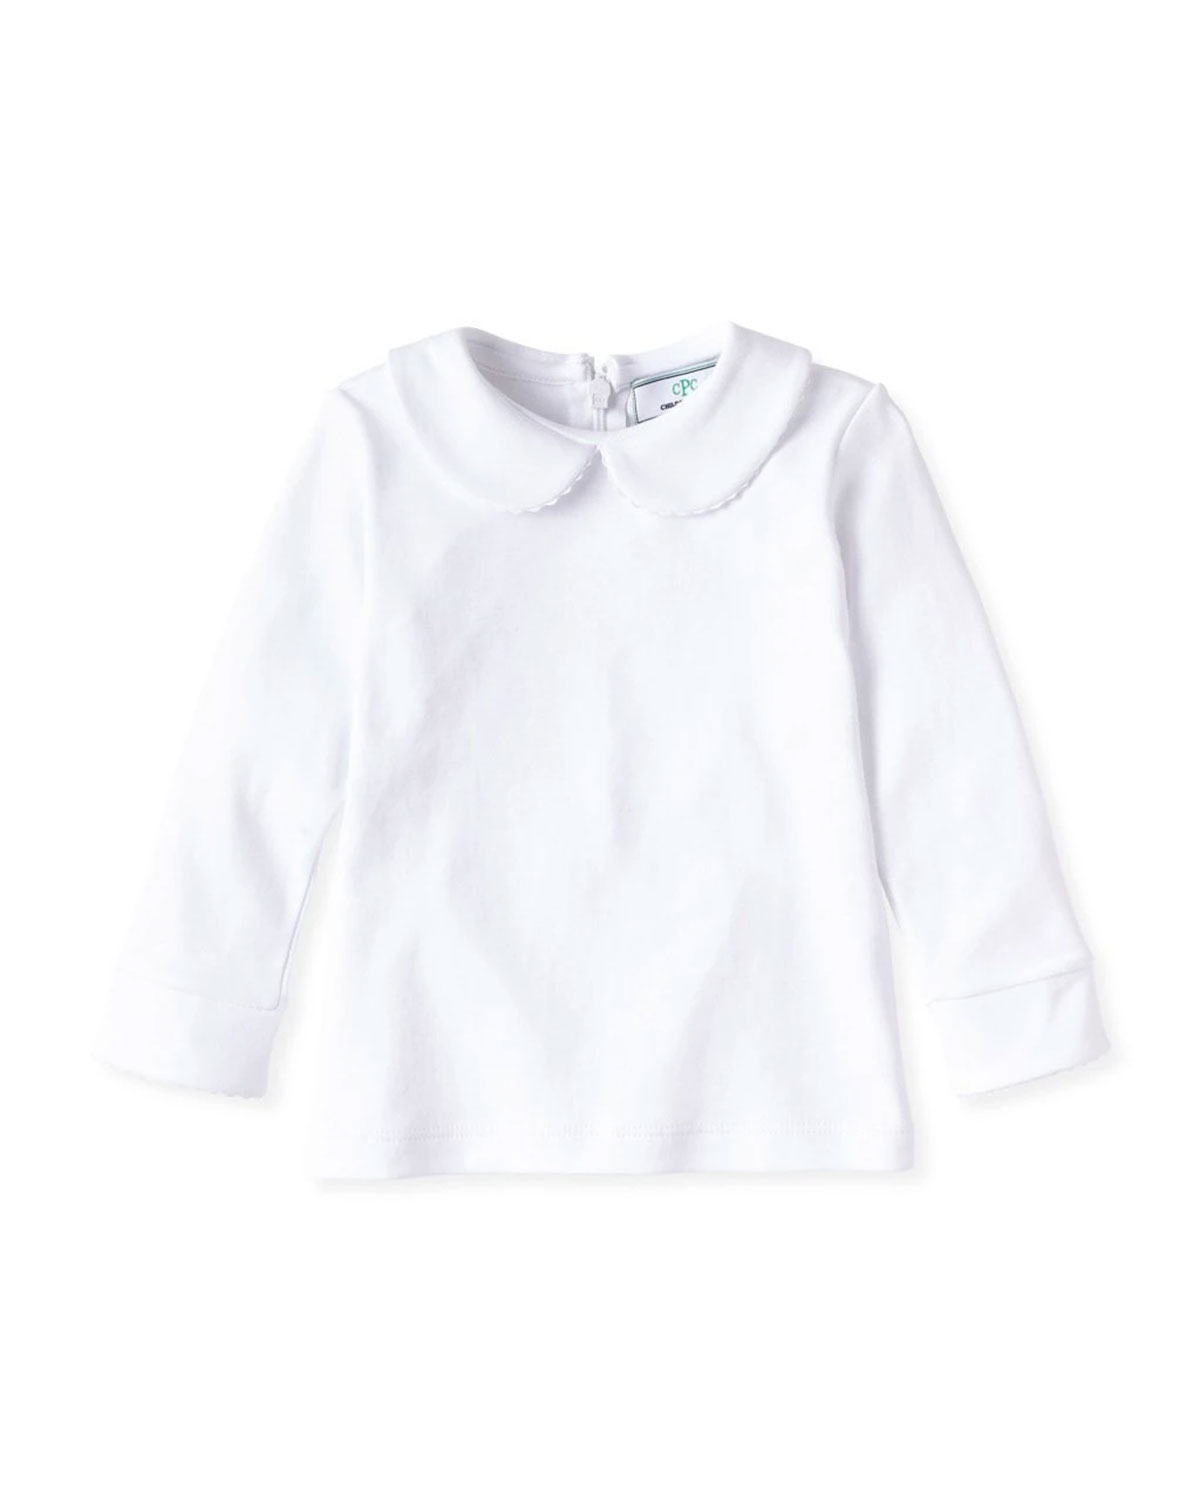 Classic Prep Childrenswear Girl's Isabelle Long-Sleeve Collared Shirt, Size 9M-8